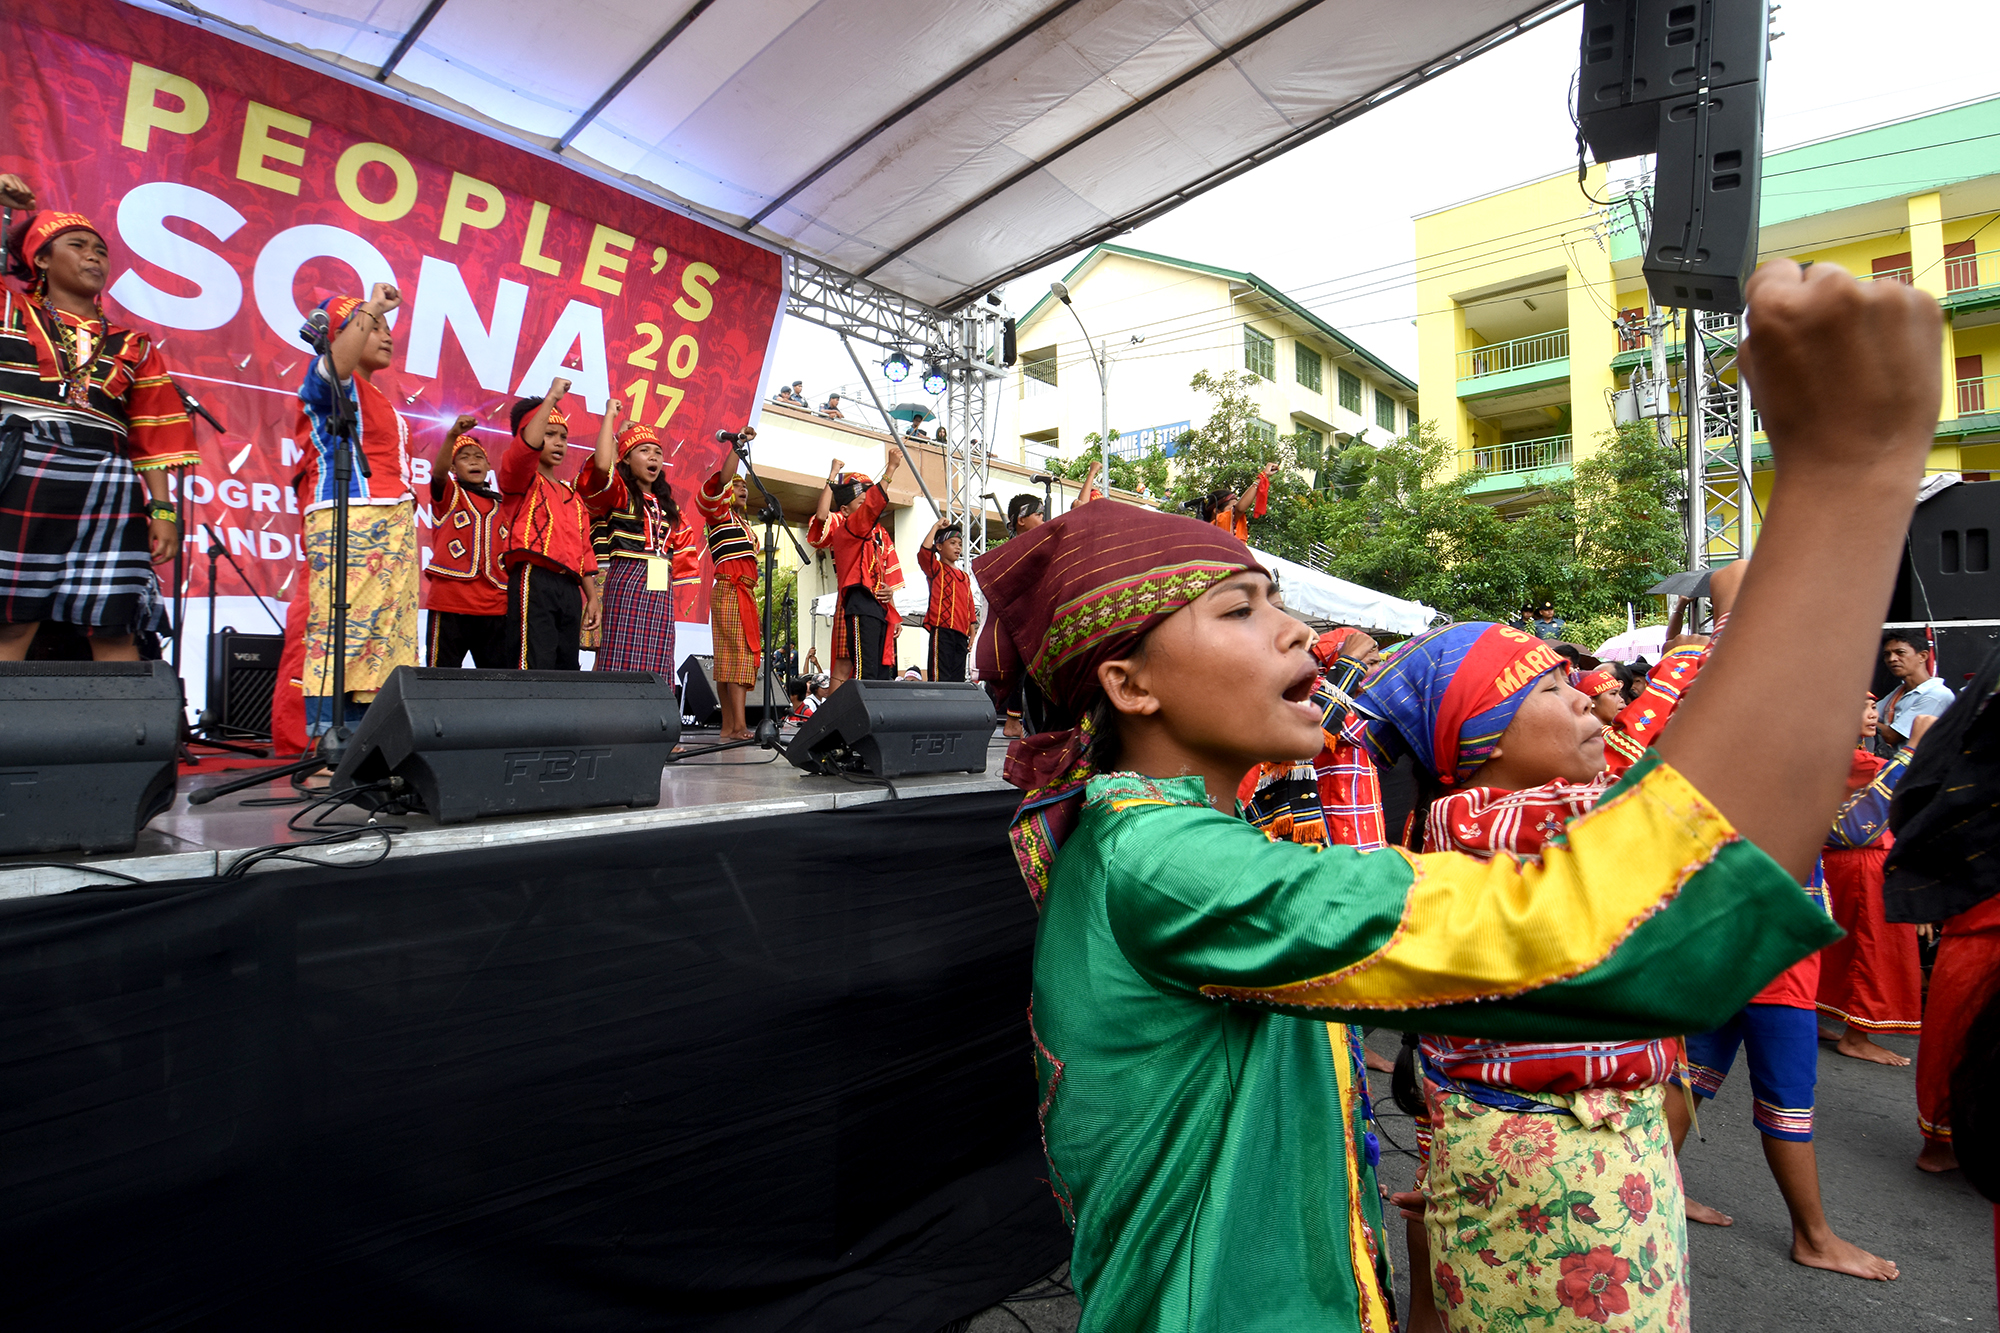 PEOPLE'S SONA. Members of the Lumad from Mindanao join a protest march during President Rodrigo Duterte's 2nd SONA on July 24, 2017. Photo by Anjie de Silva/Rappler